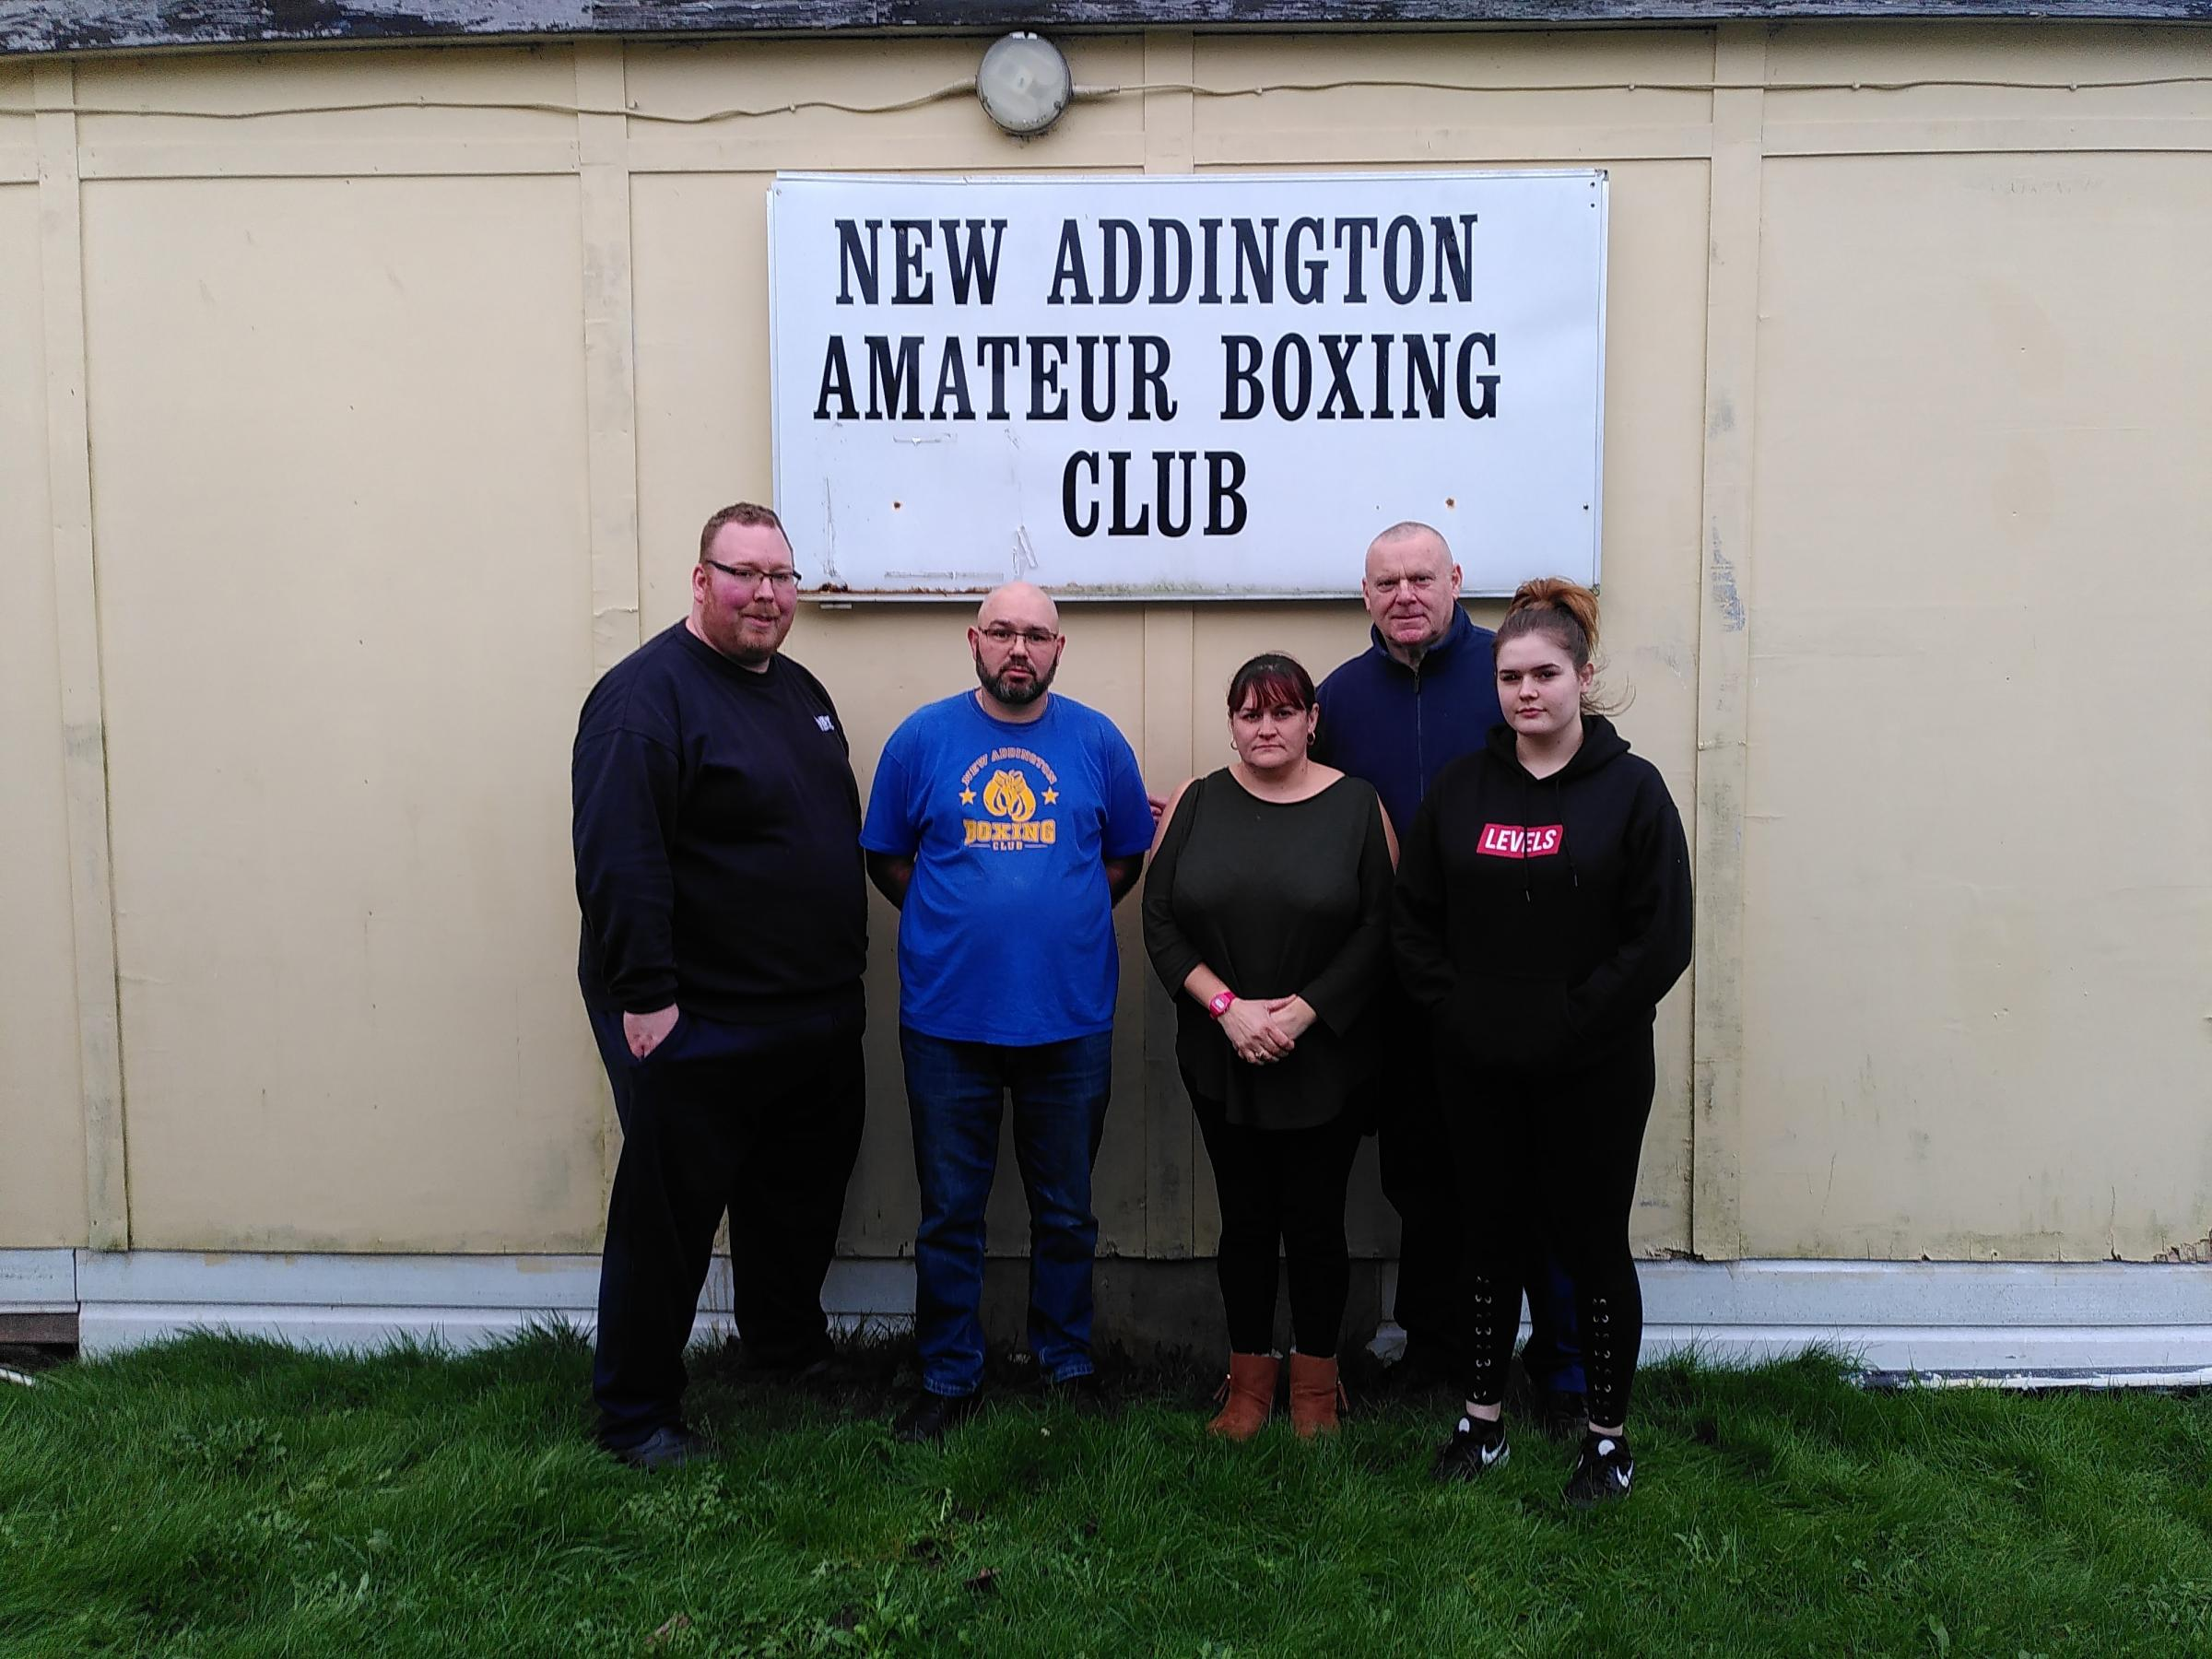 This New Addington boxing club is 'fighting for its future' after being told to leave by April